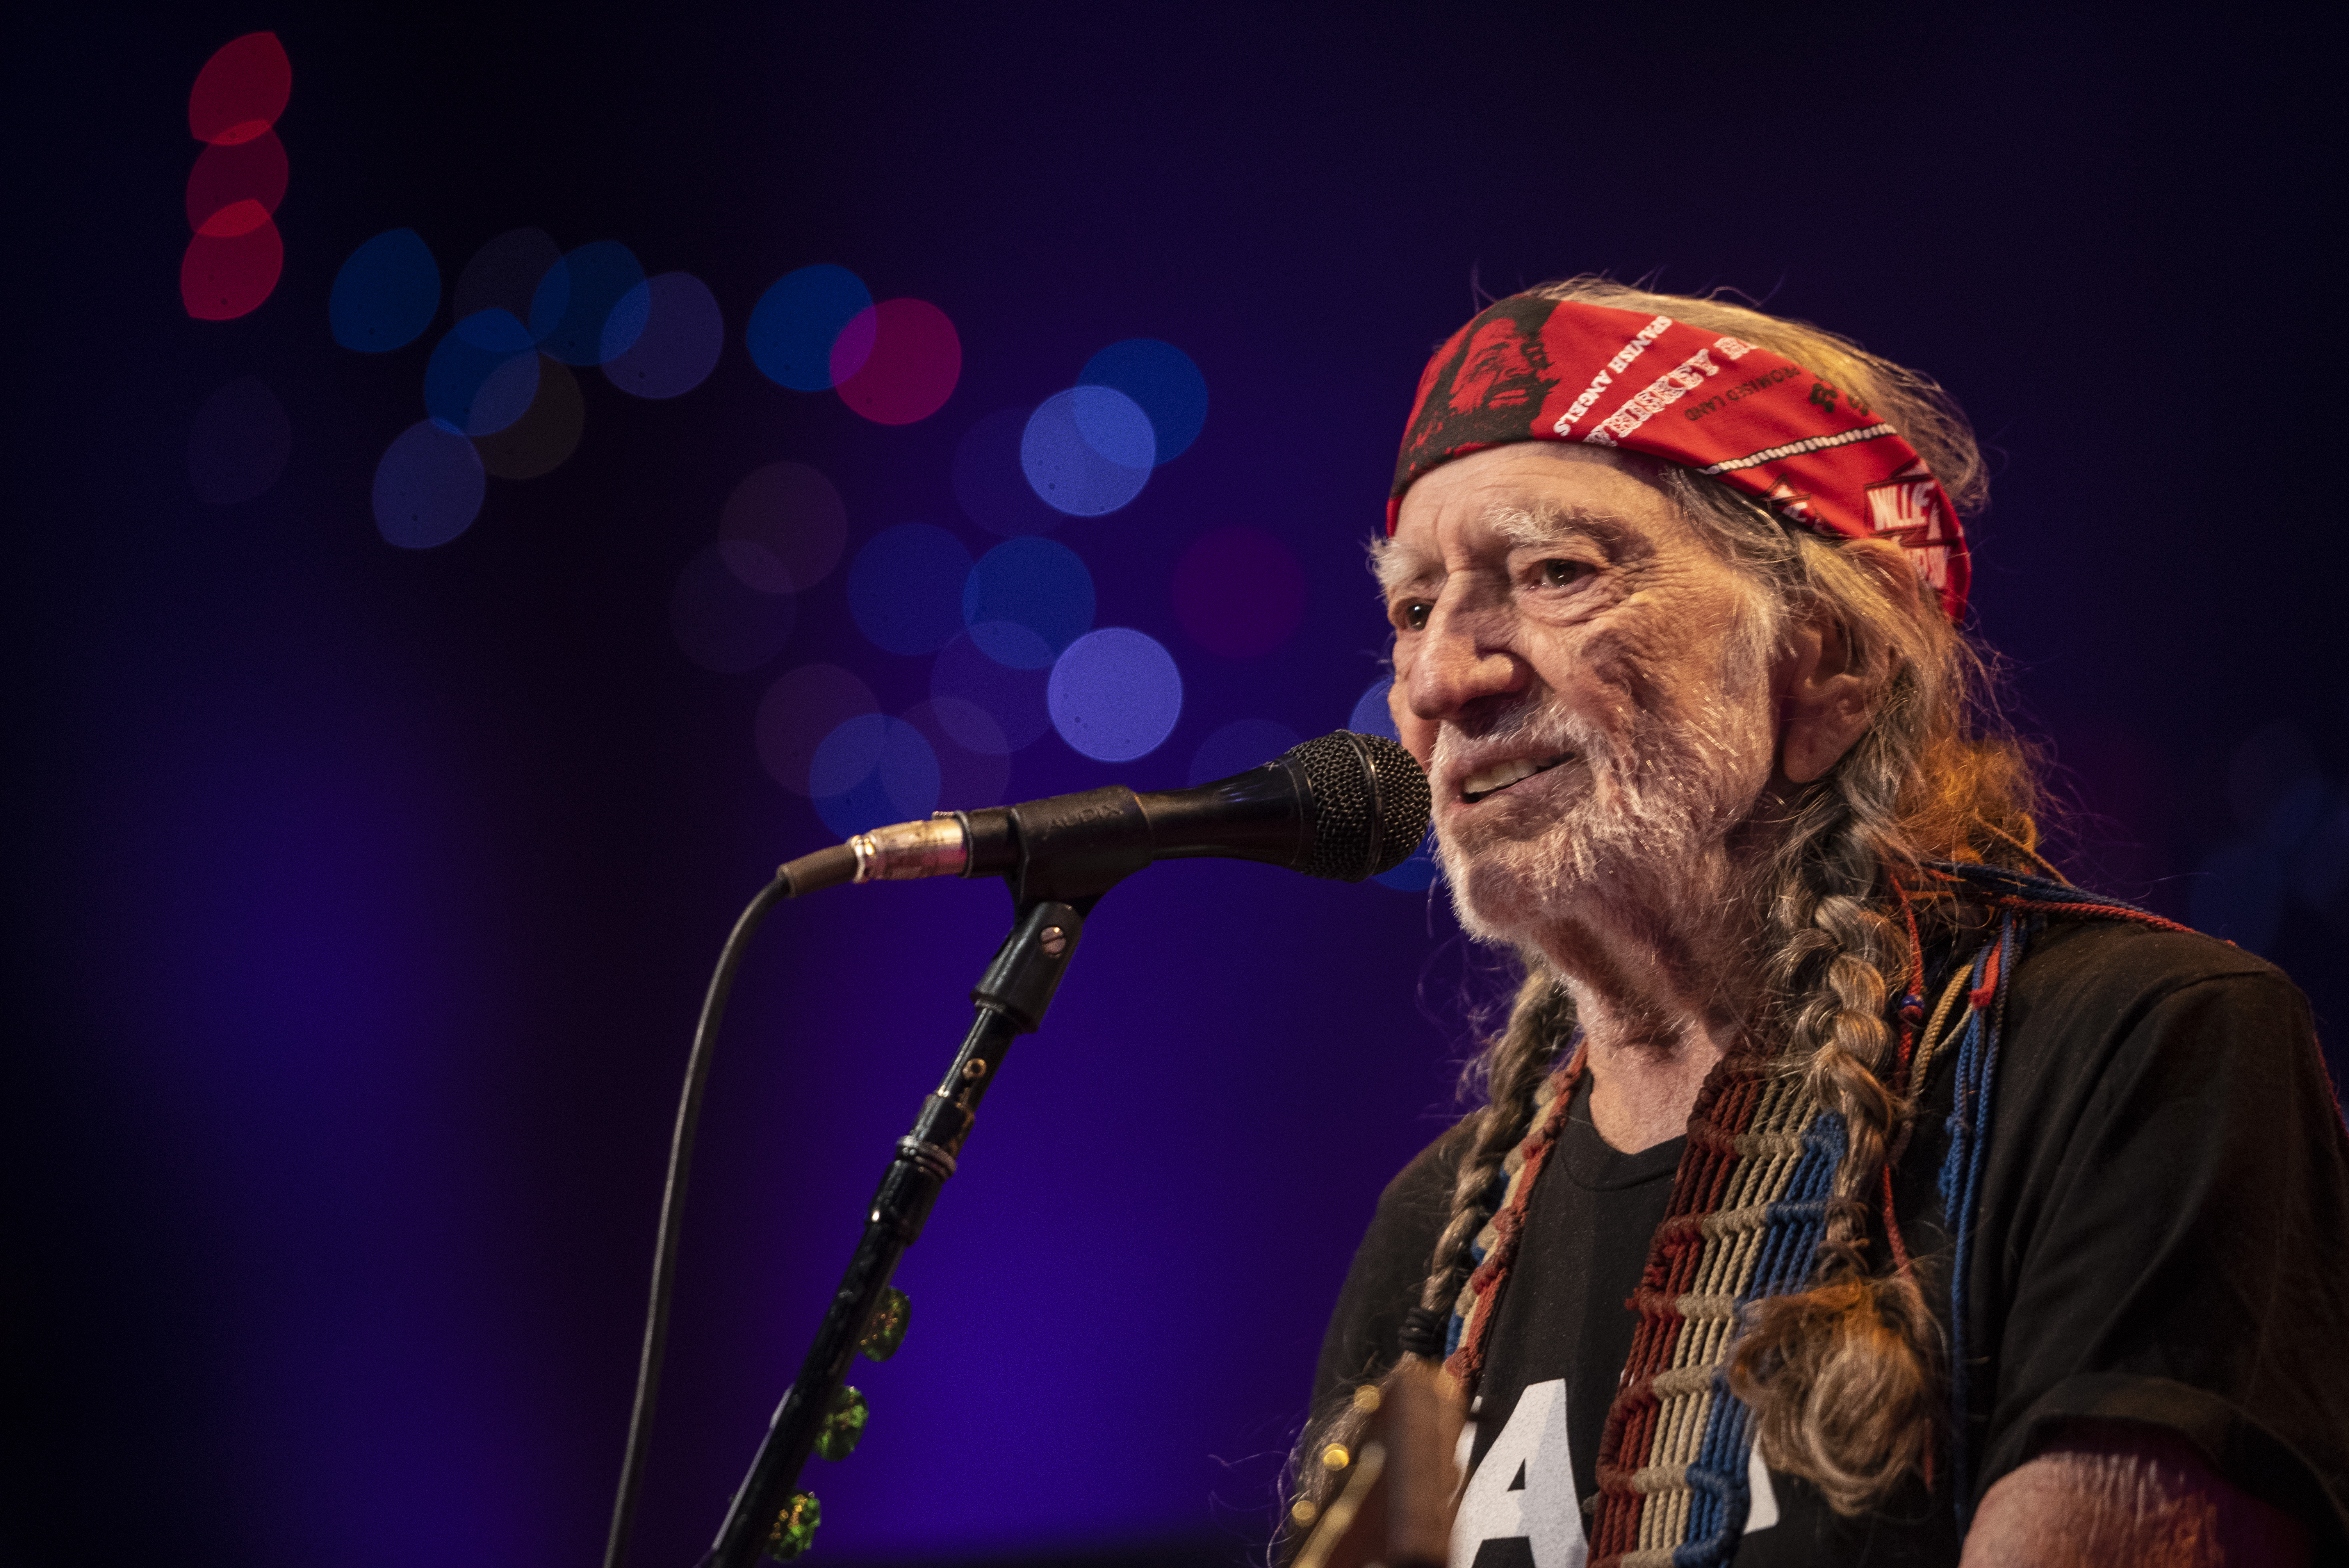 Willie Nelson Sings 'Funny How Time Slips Away' in 'Austin City Limits' Return